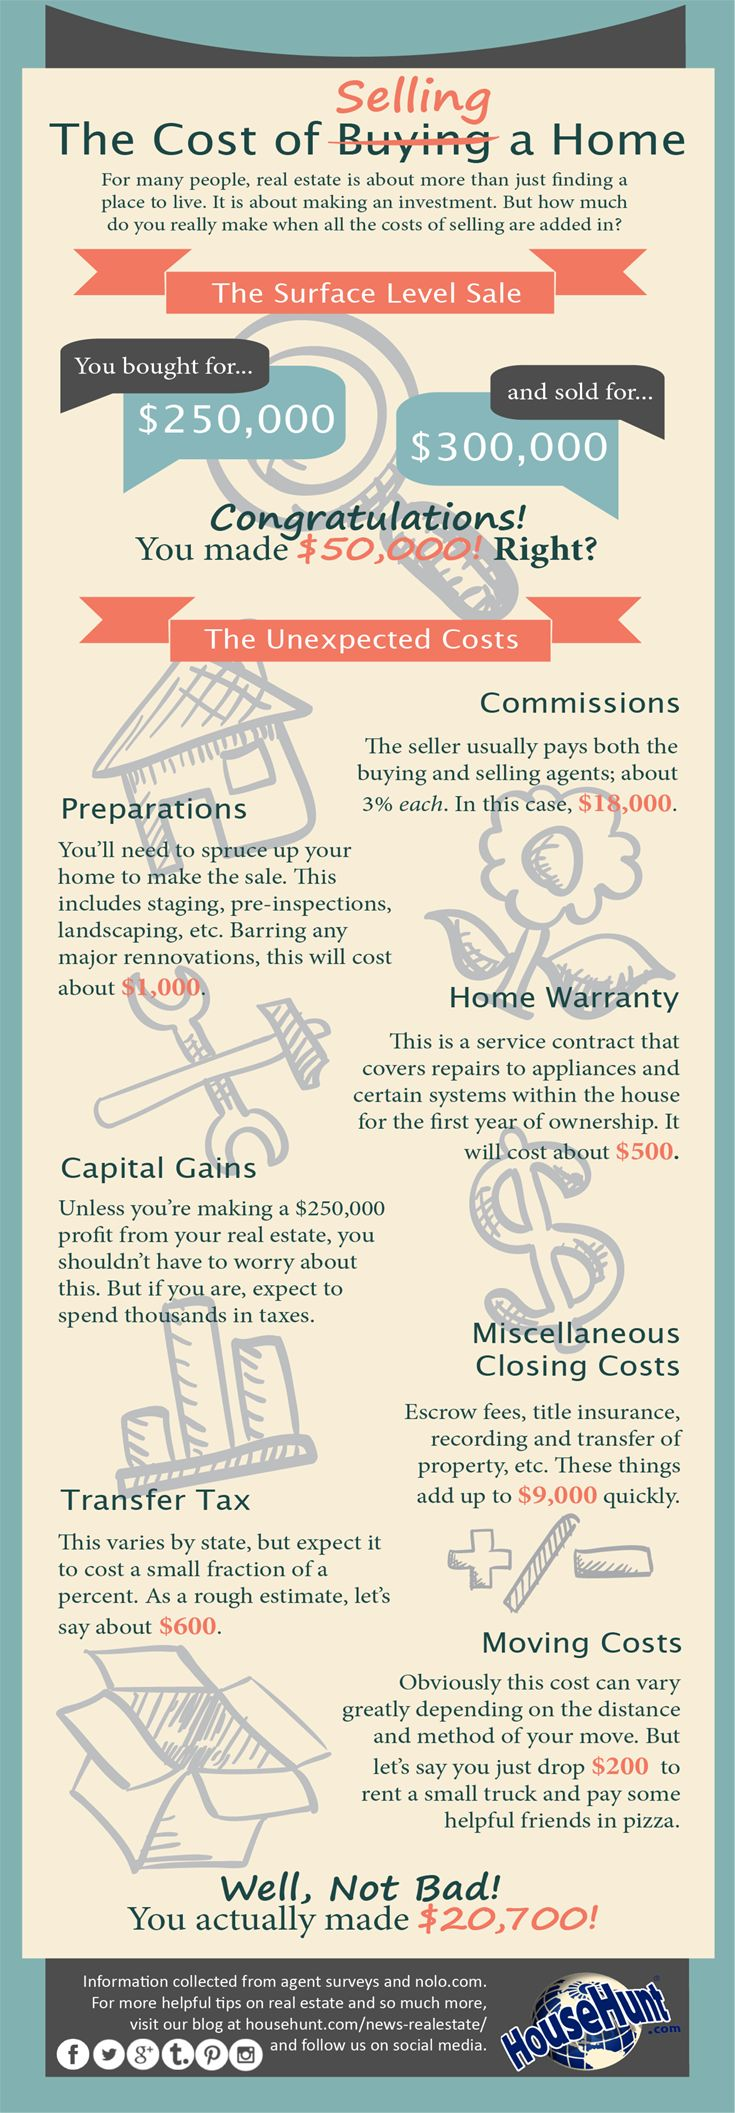 Hidden Cost of Selling a Home [Infographic] -For many people, real estate is about more than just finding a place to live. It is about making an investment. We all know that buying a home costs money. But what about the cost of selling a home? There are some factors that you may not consider when you're planning your move into a bigger and better place. -By Jesse McCarl on March 4th, 2014- Take a look at this infographic for more information: